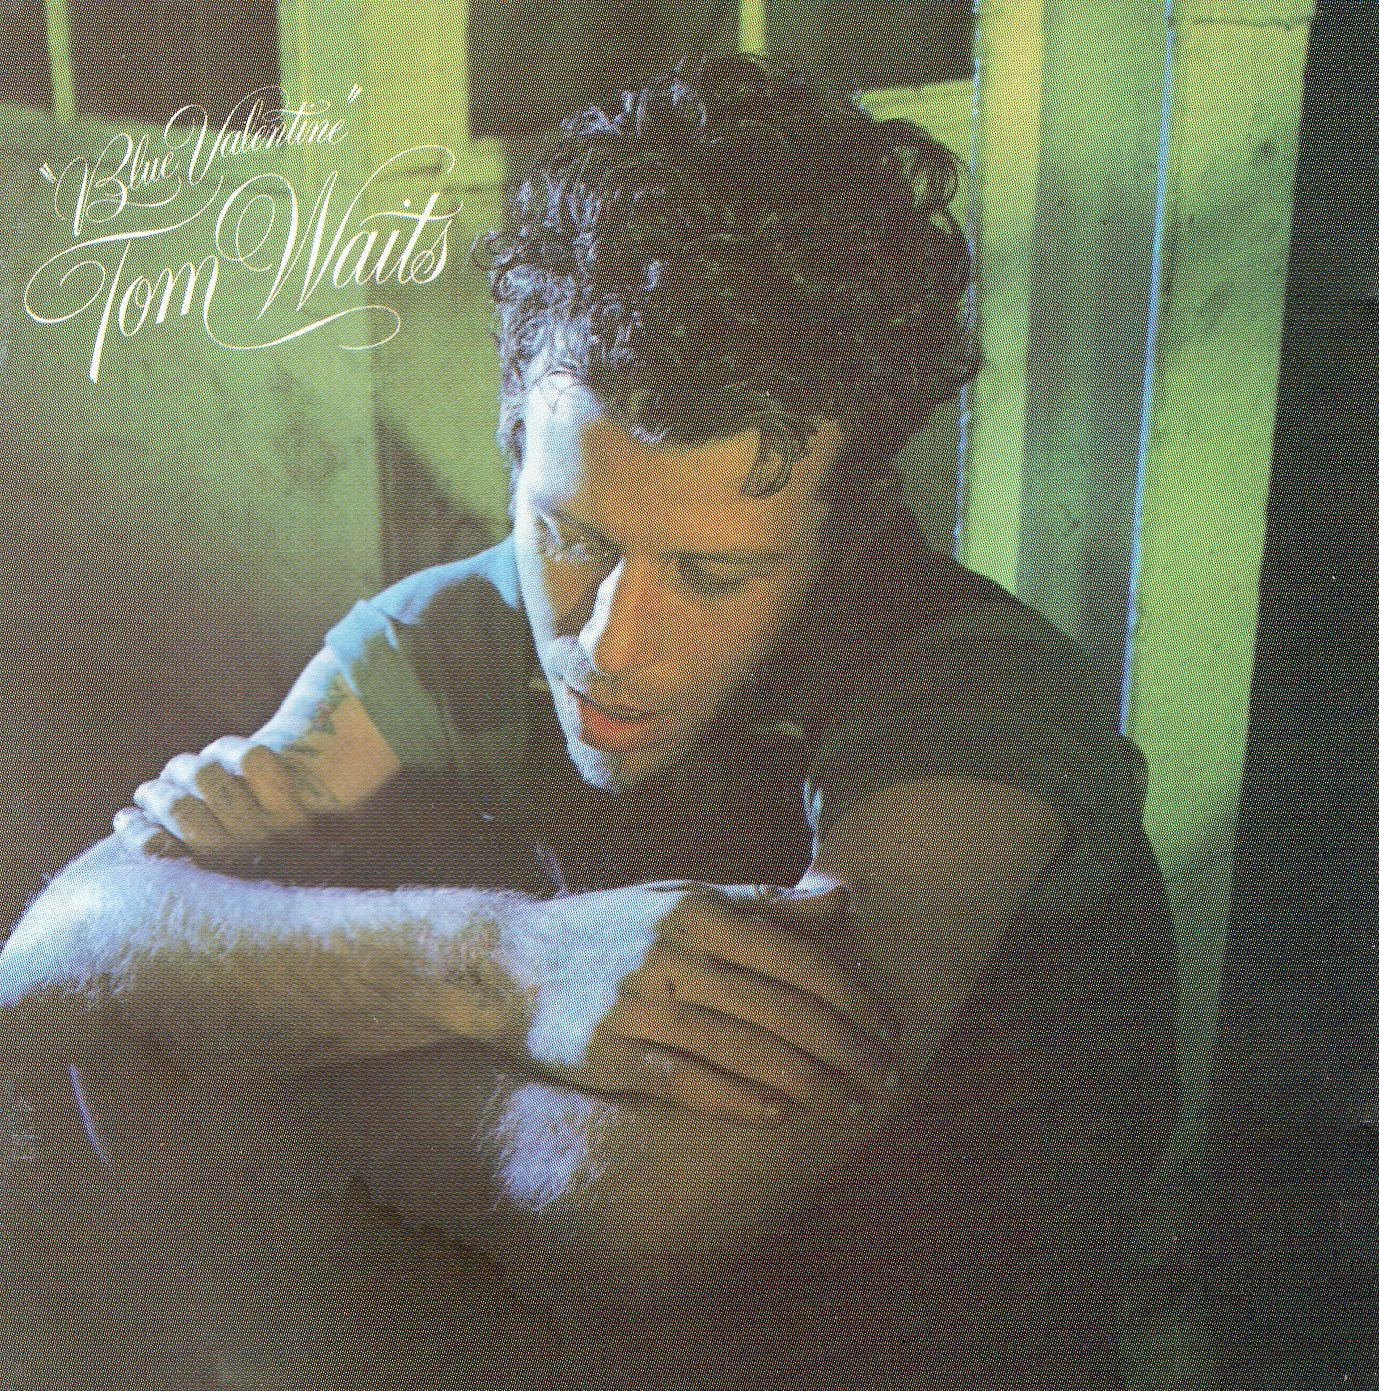 """Blue Valentine"" Tom Waits"